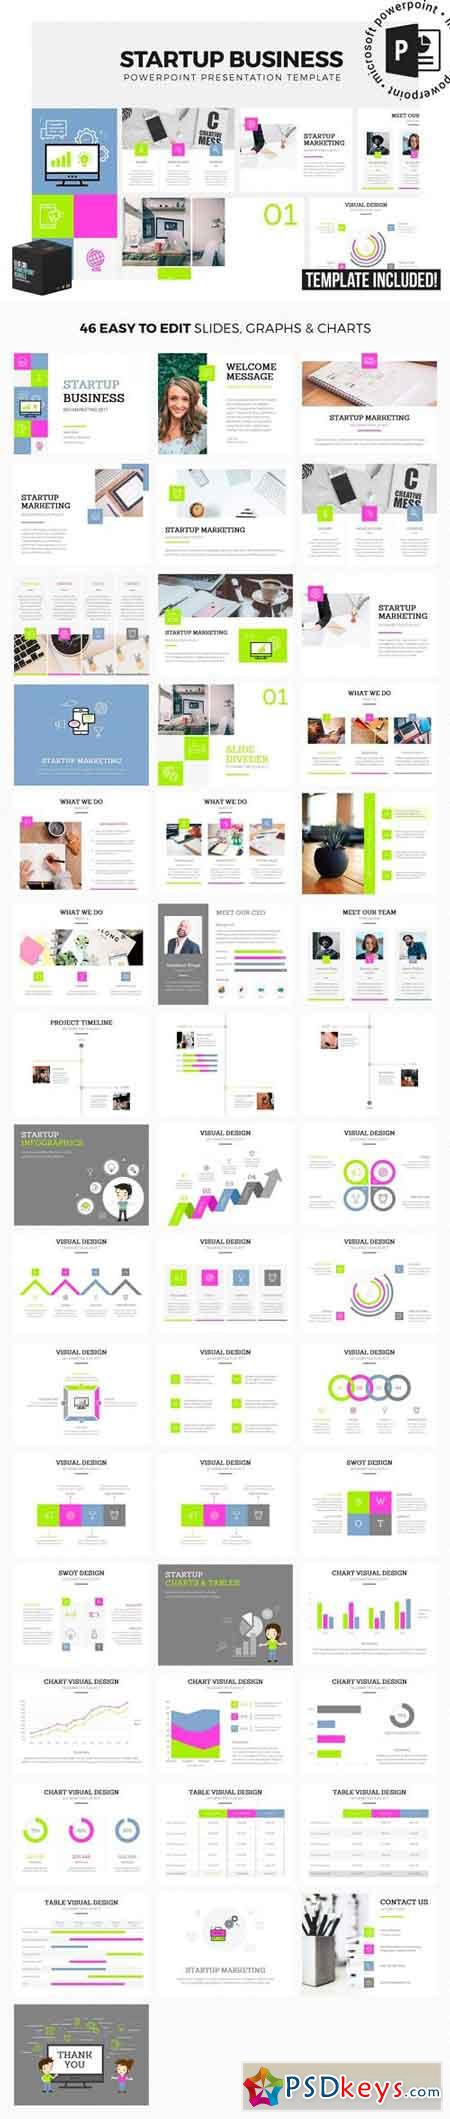 10-IN-1 PowerPoint Bundle 1620962